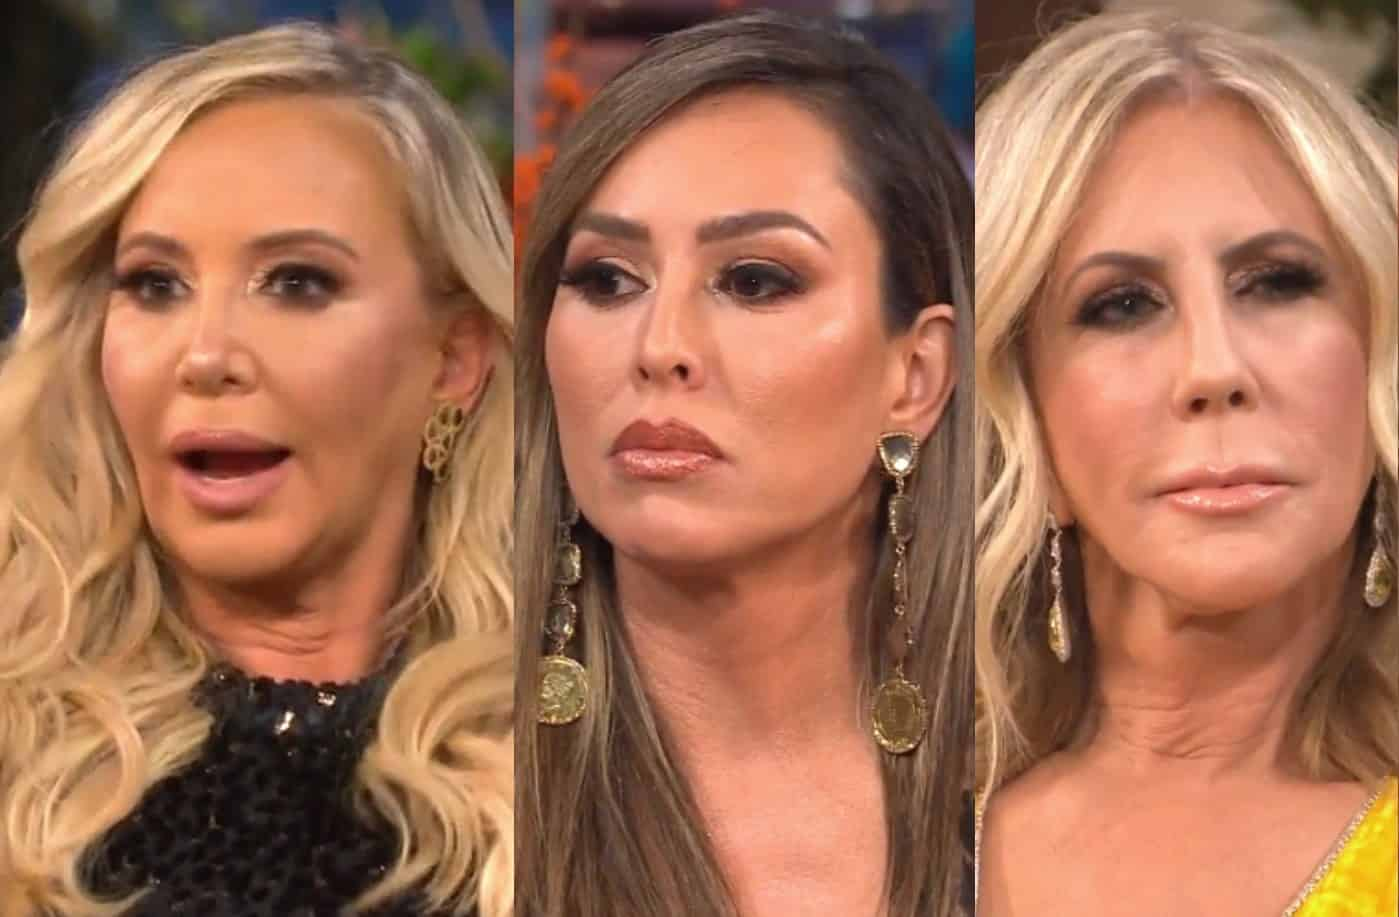 RHOC Reunion Part 2 Recap: Shannon Cries Over Spending $250K on Lawsuit as Kelly and Vicki Make Amends